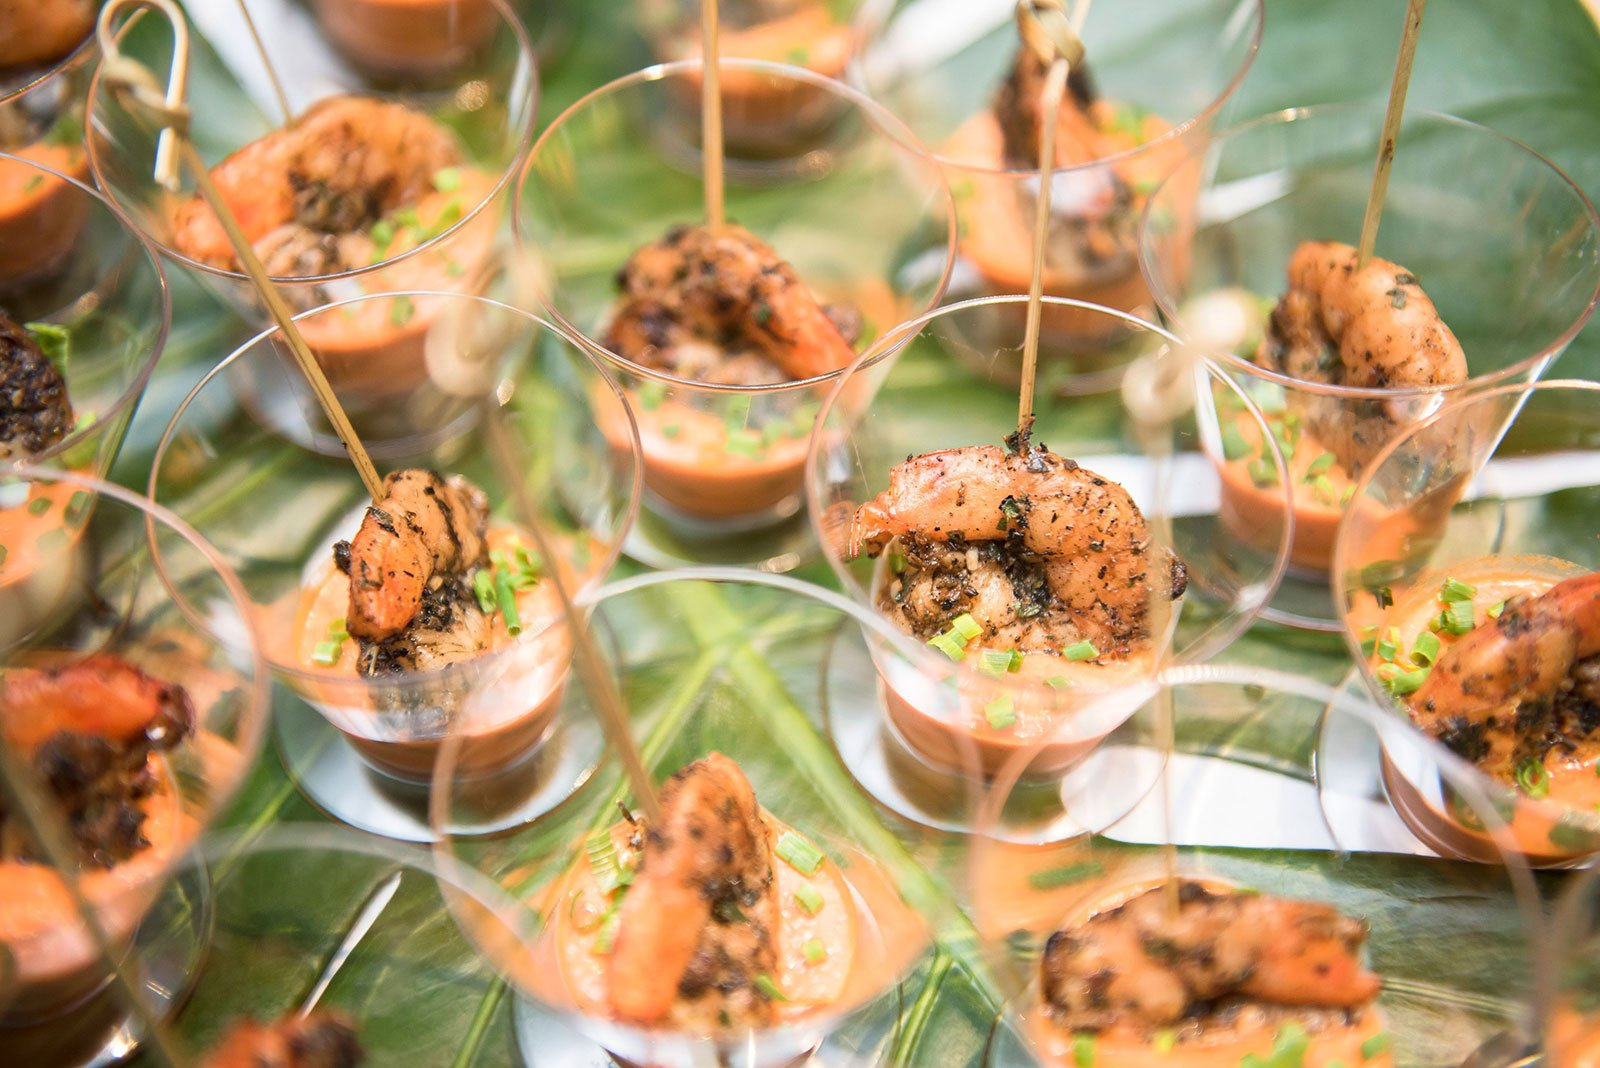 Grilled and Chilled Spicy Island Shrimp was served at the 2017 Billboard Latin Music Awards VIP After-Party